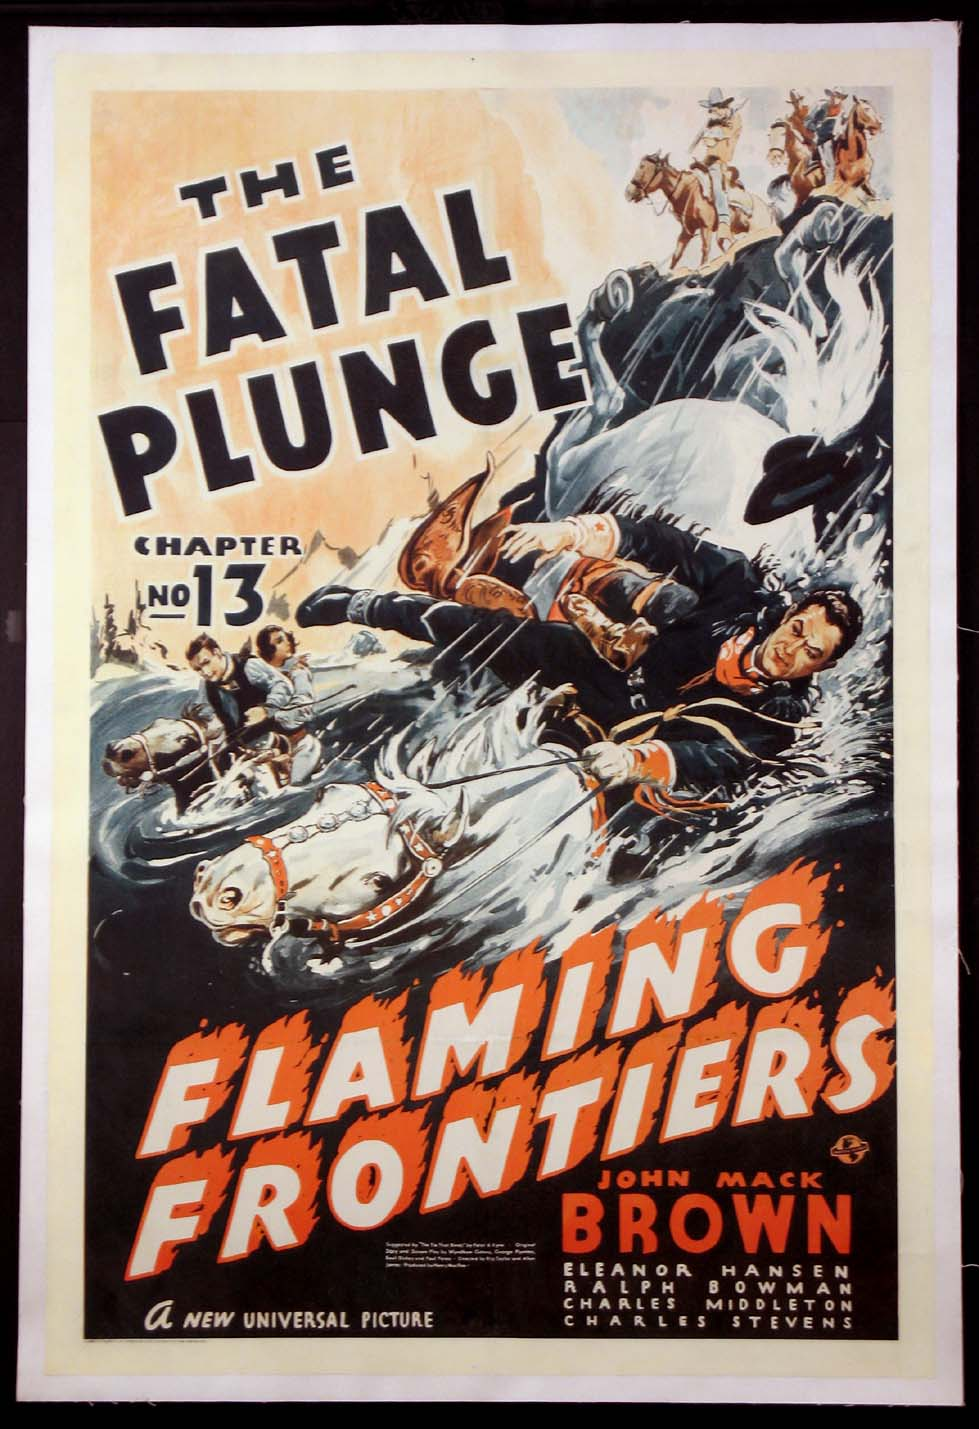 FLAMING FRONTIERS (Chap #13) @ FilmPosters.com